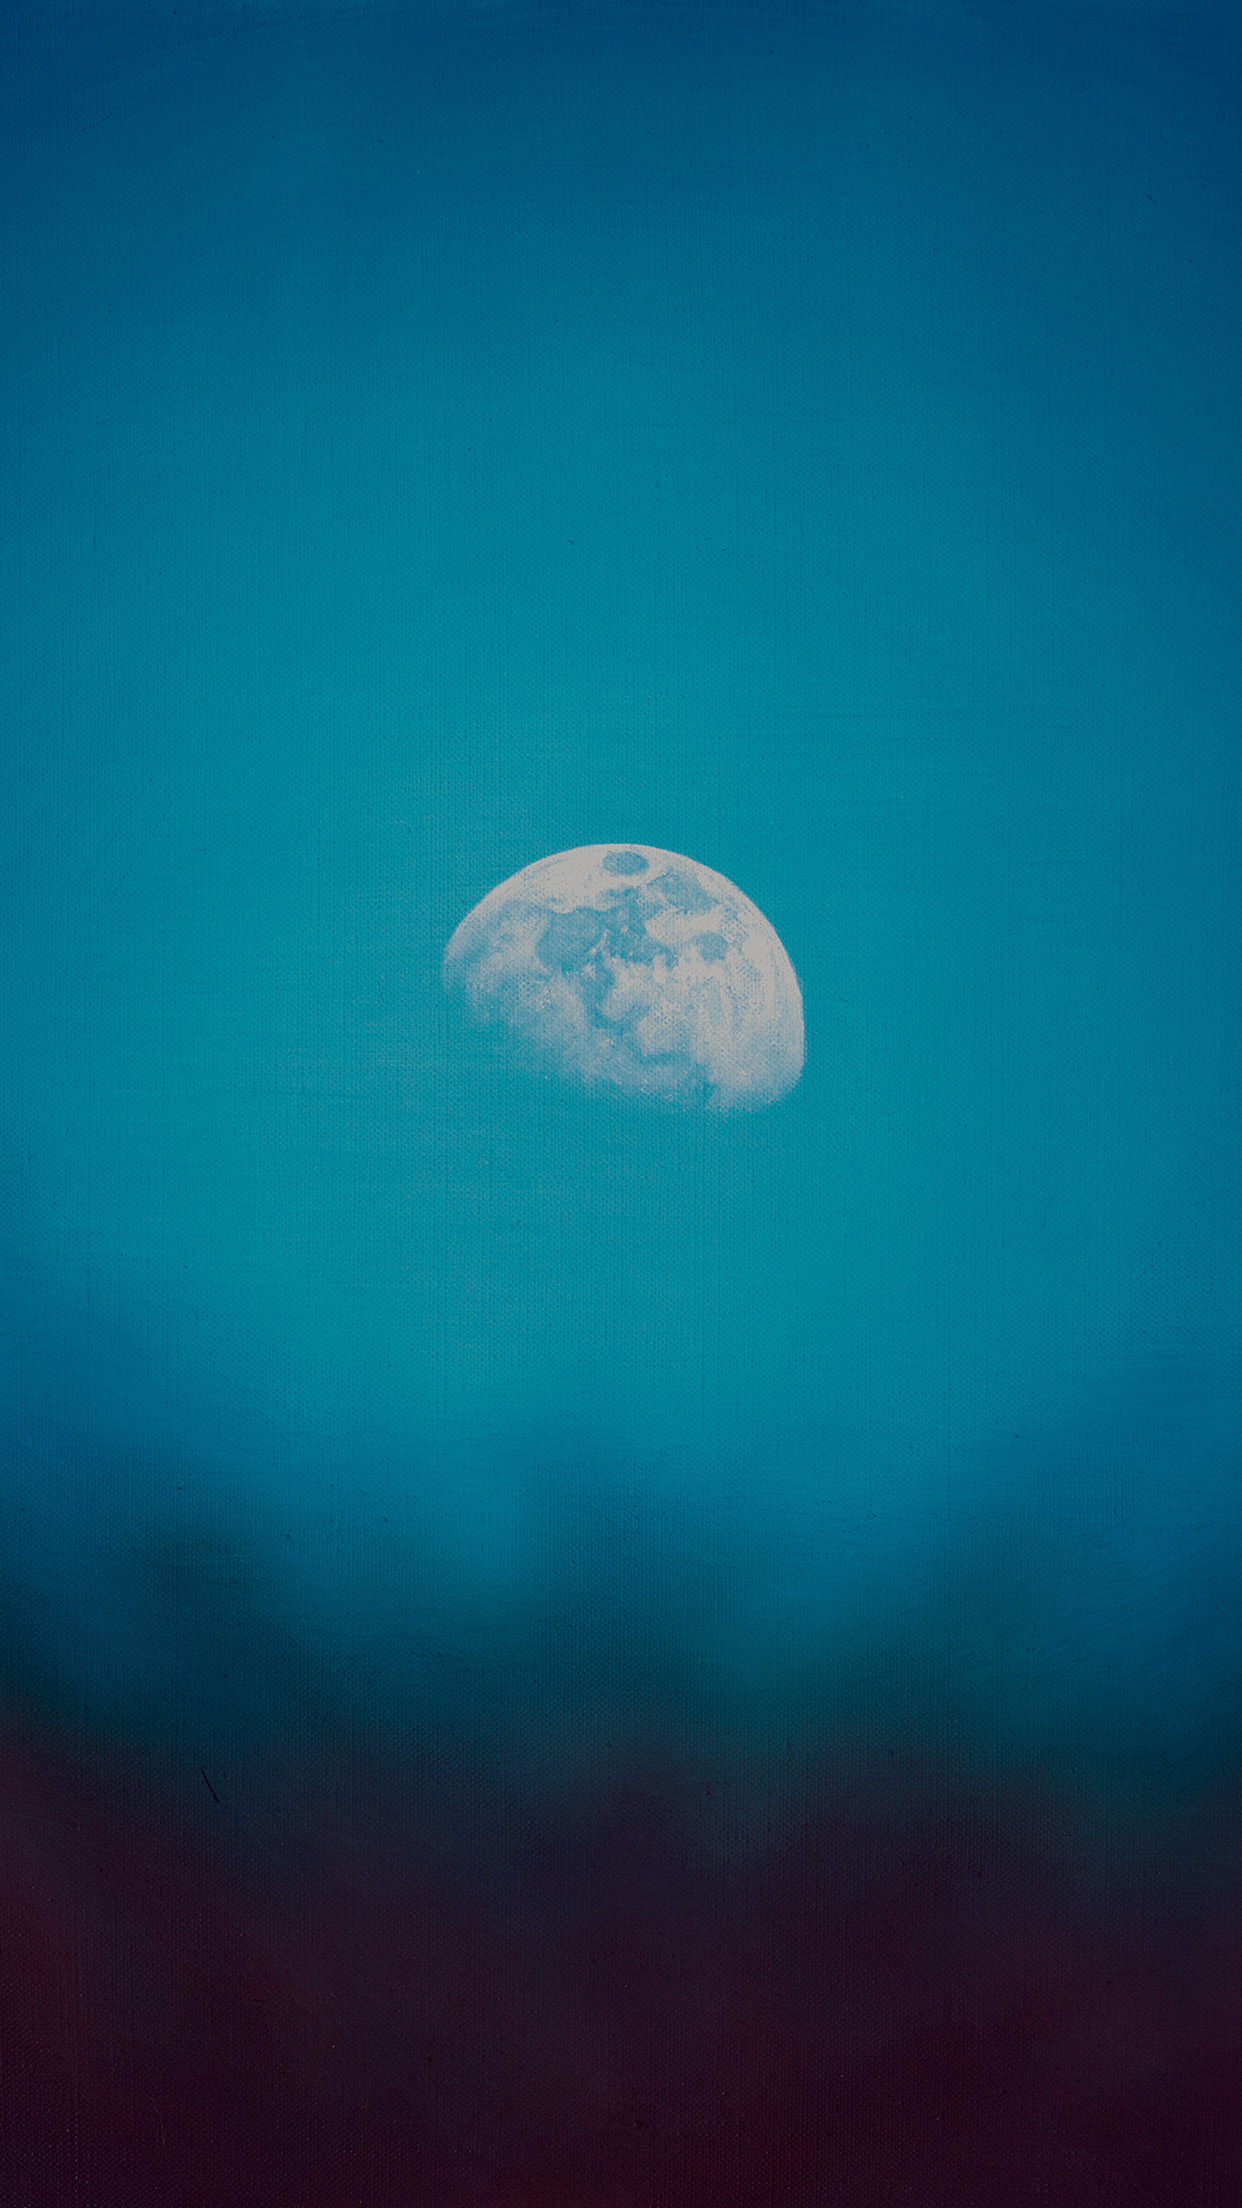 Download Wallpaper Night Blue - Moon-Rise-Day-Nature-Blue-Dark-Night-Green  Graphic.jpg